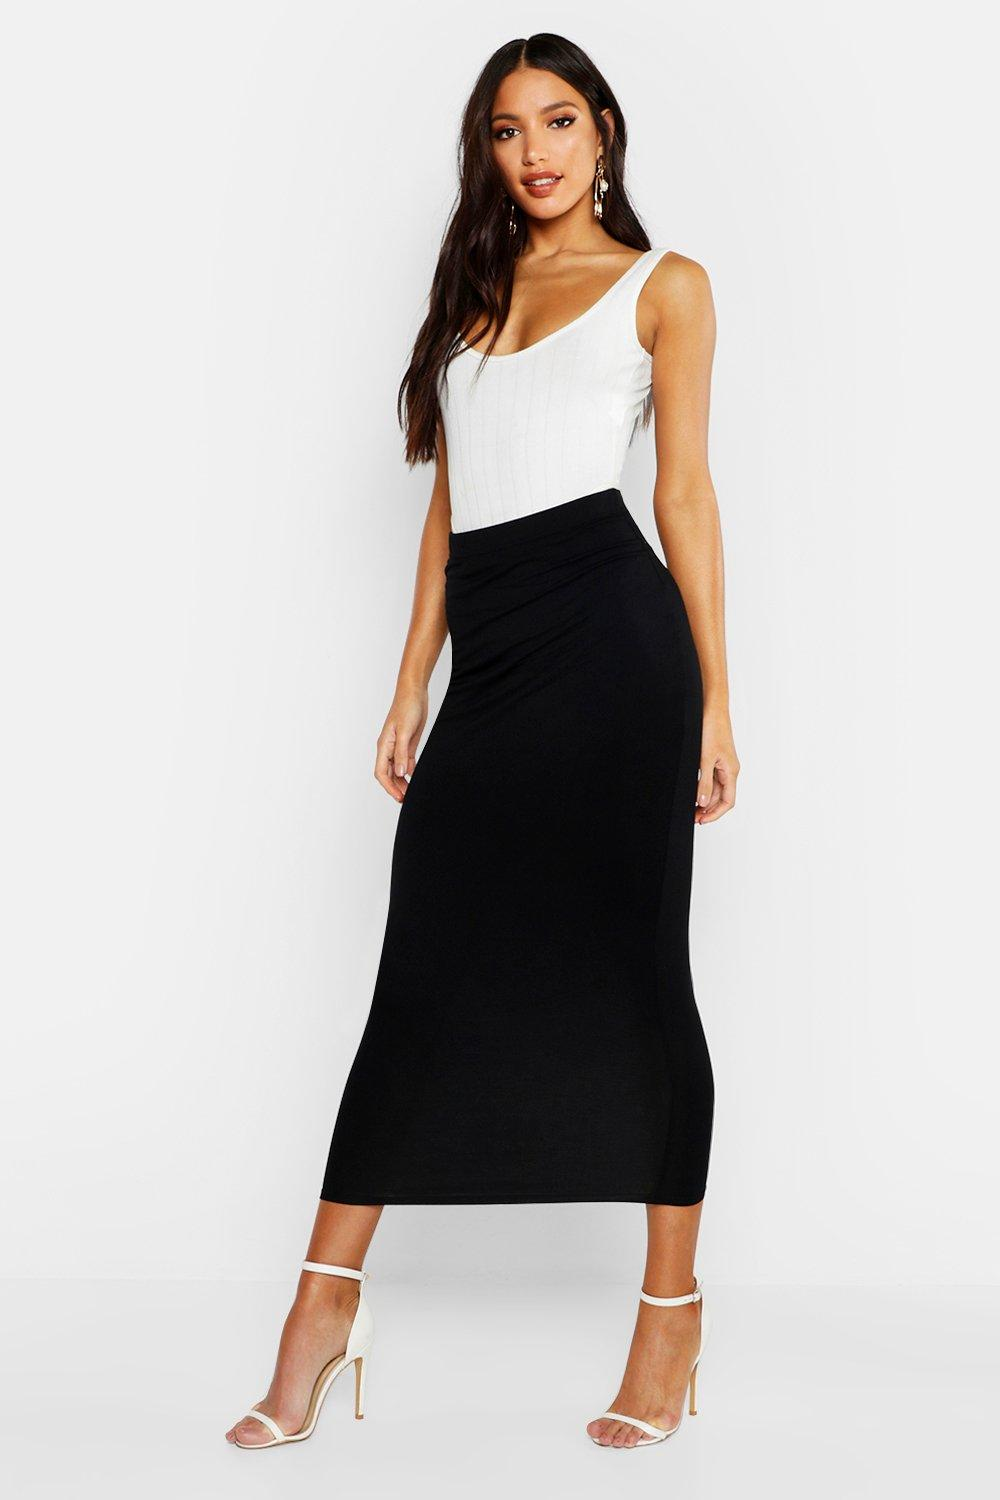 b3ee87498e81 Womens Black Basic Jersey Midaxi Skirt. Hover to zoom